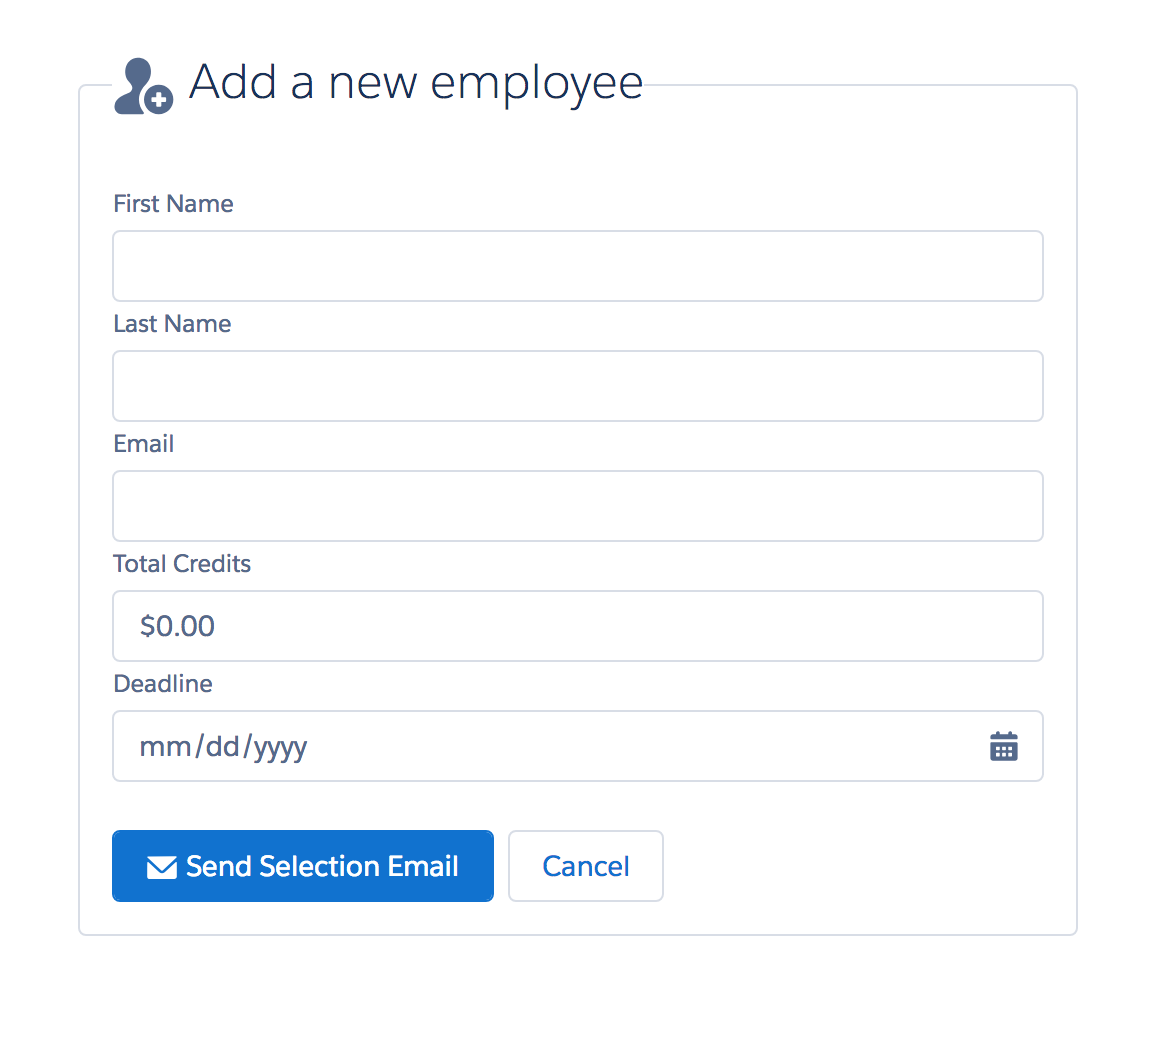 Screen_Shot_2018-10-29_at_11.51.16_AM.png